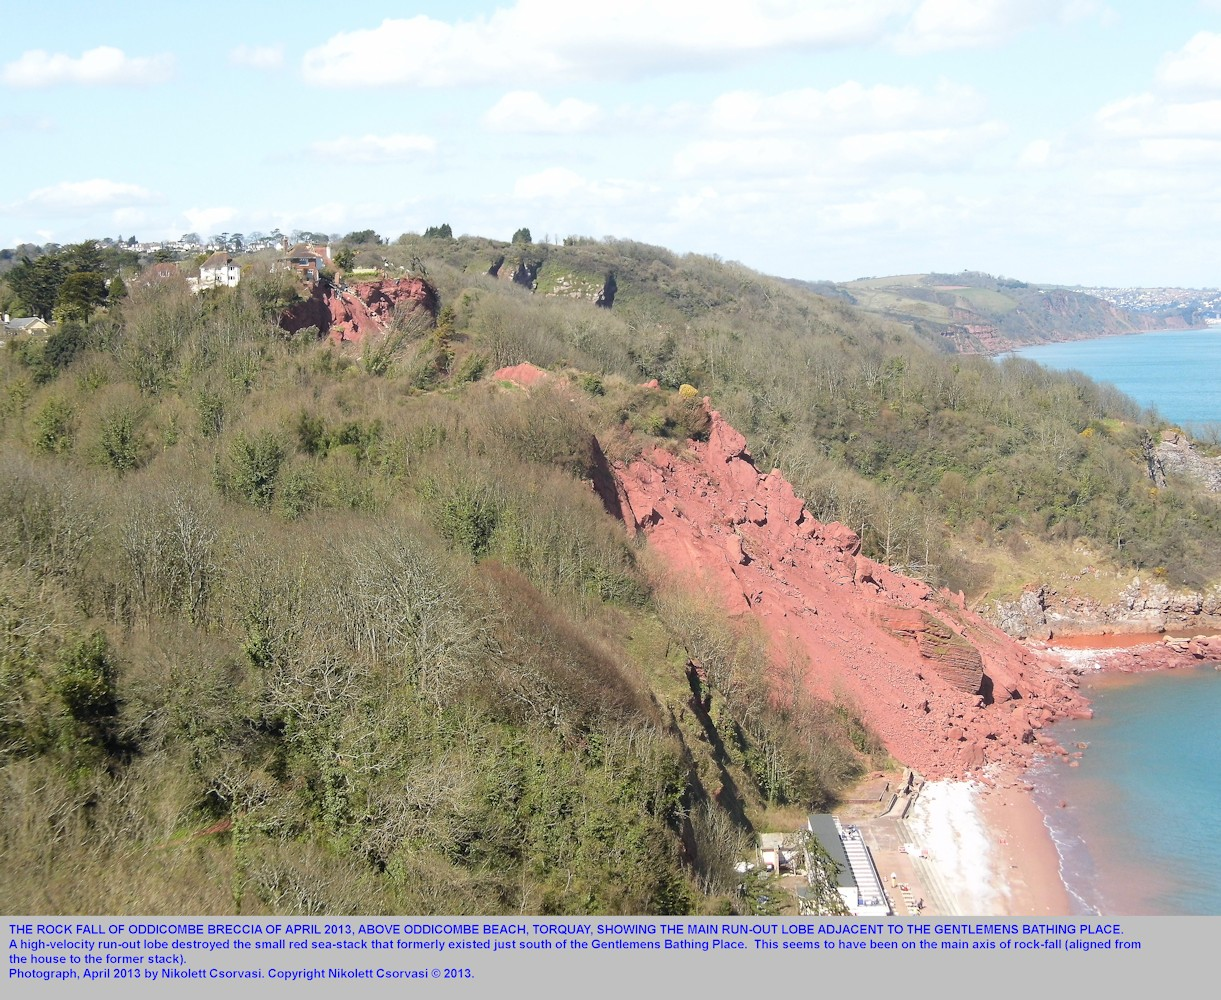 A view of the 2013 rock-fall site at northern Oddicombe Beach, Torquay, Devon, showing the remains of the long run-out lobe near Gentlemens Bathing Place